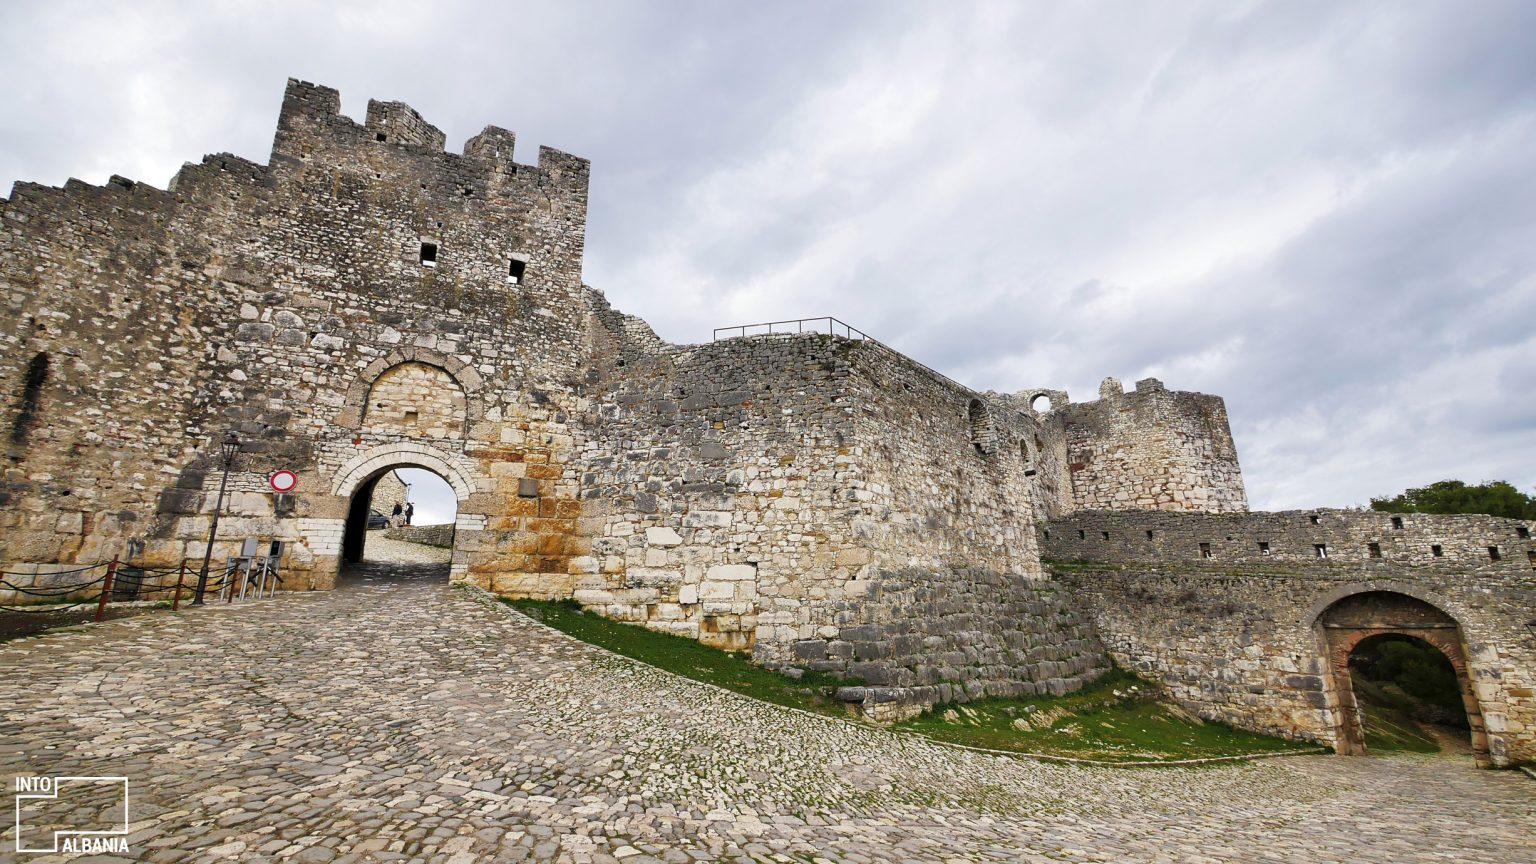 Berat Castle, photo by IntoAlbania